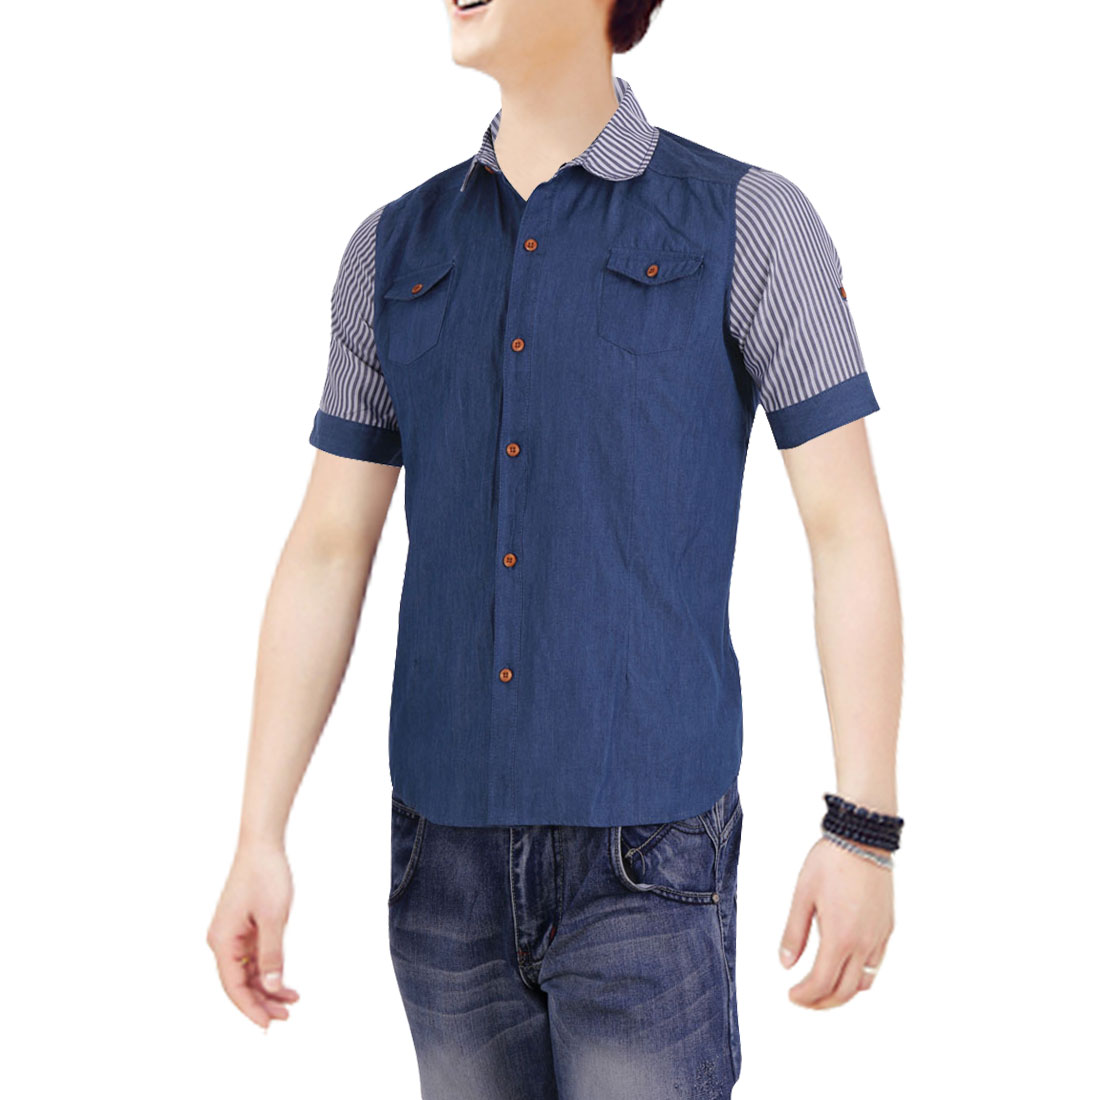 Mens Chic Point Collar Striped Short Sleeve Button Down Blue Denim Shirt S